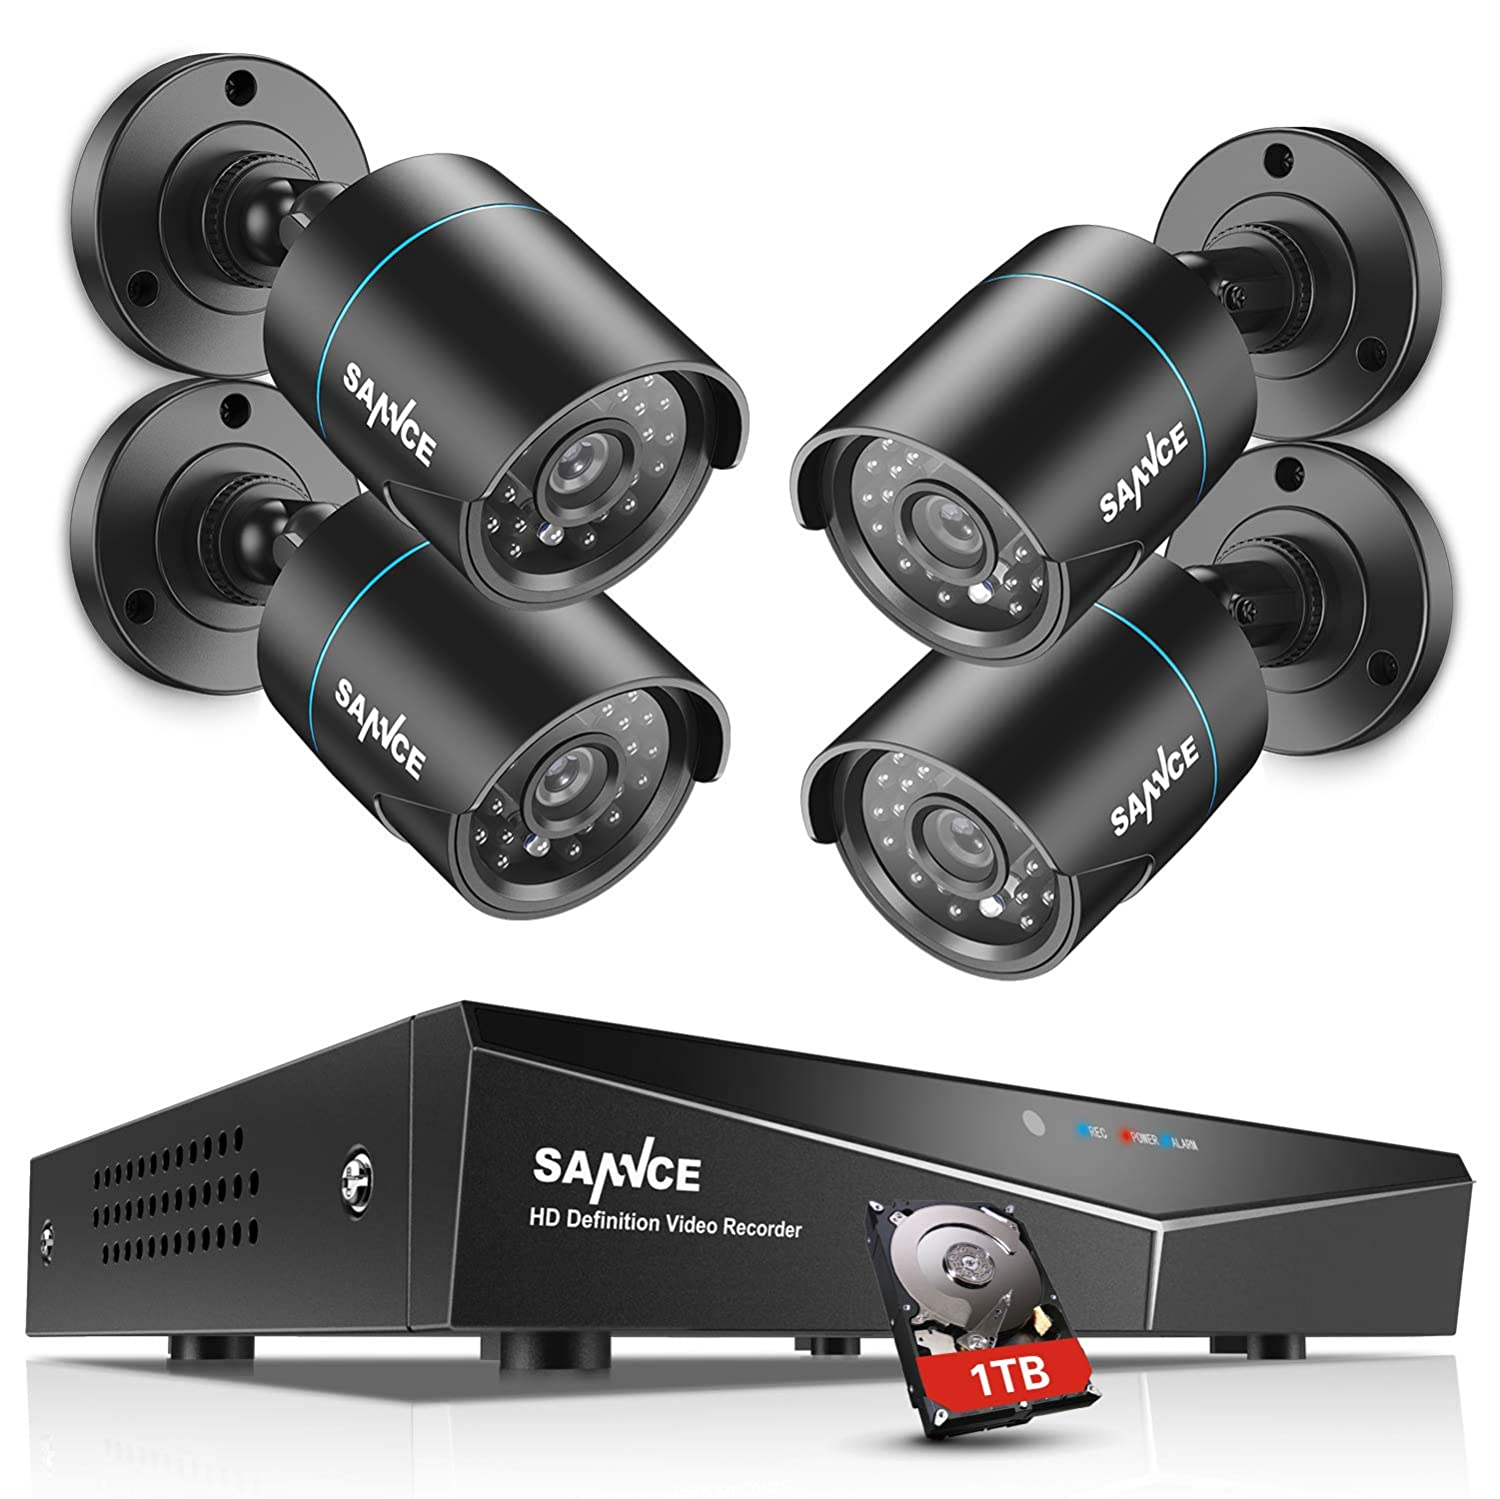 dafe26db9736 SANNCE 5-in-1 8CH 1080N Outdoor Camera System with 1TB Surveillance Hard  Drive and 4pcs AHD720P Weatherproof CCTV Camera